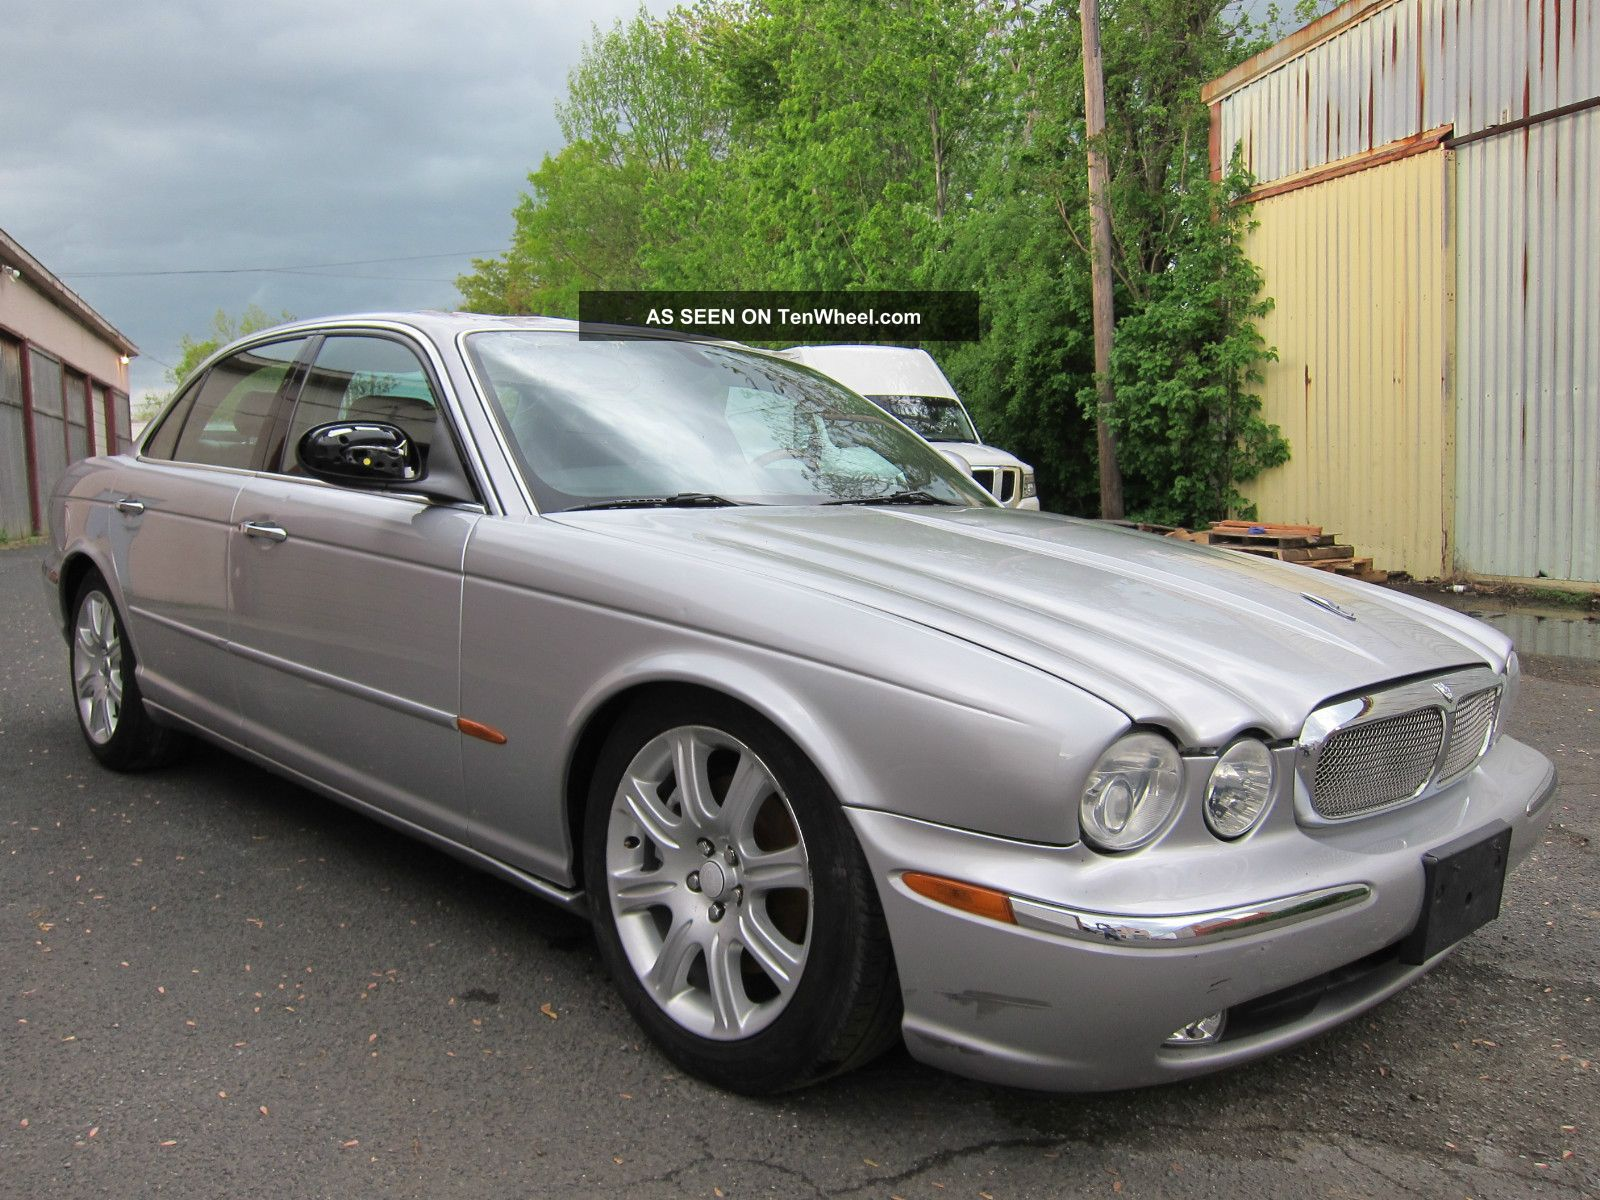 car for auburn jaguar classics modern near classic on cars california sale